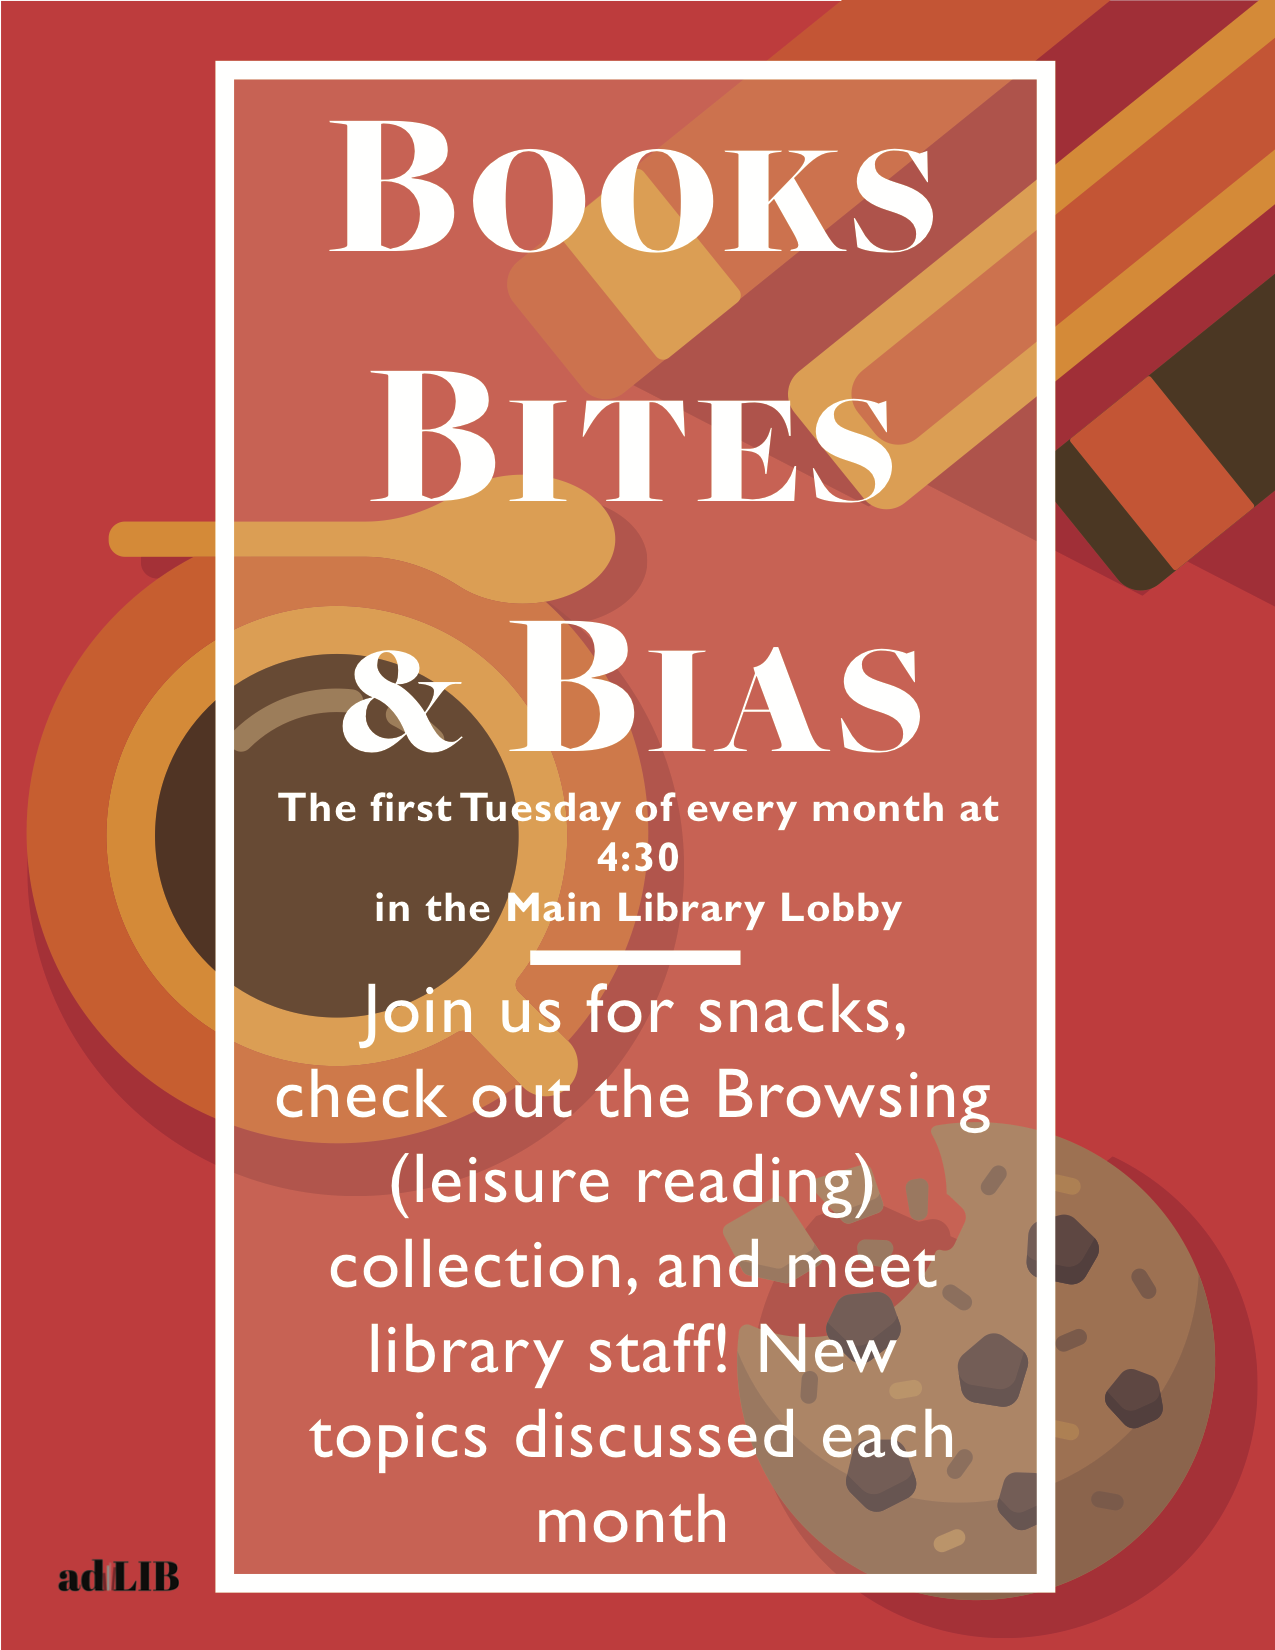 Books, Bites, and Bias